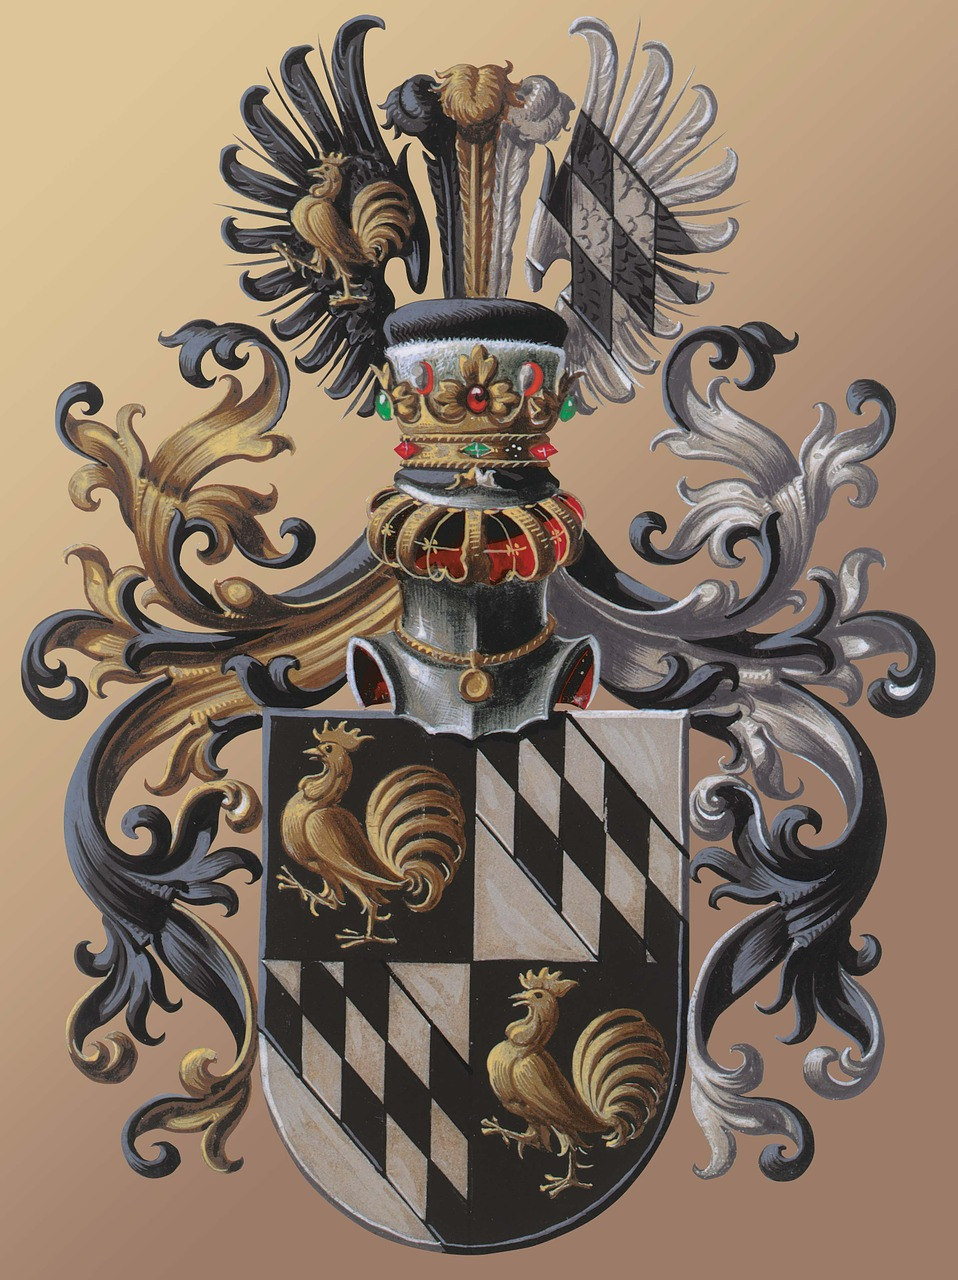 coat of arms,european,tradition,hereditary,characters,person,family,group of people,noble family,knighthood,knight,hahn,argyle pattern,wing,feather,helm,knight helmet,heraldry,gems,nobleman,old,antique,gold,silver,black,white,armor,metal,visor,middle ages,to ocher,palatial,stylized,gold medallion,chain,free pictures, free photos, free images, royalty free, free illustrations, public domain